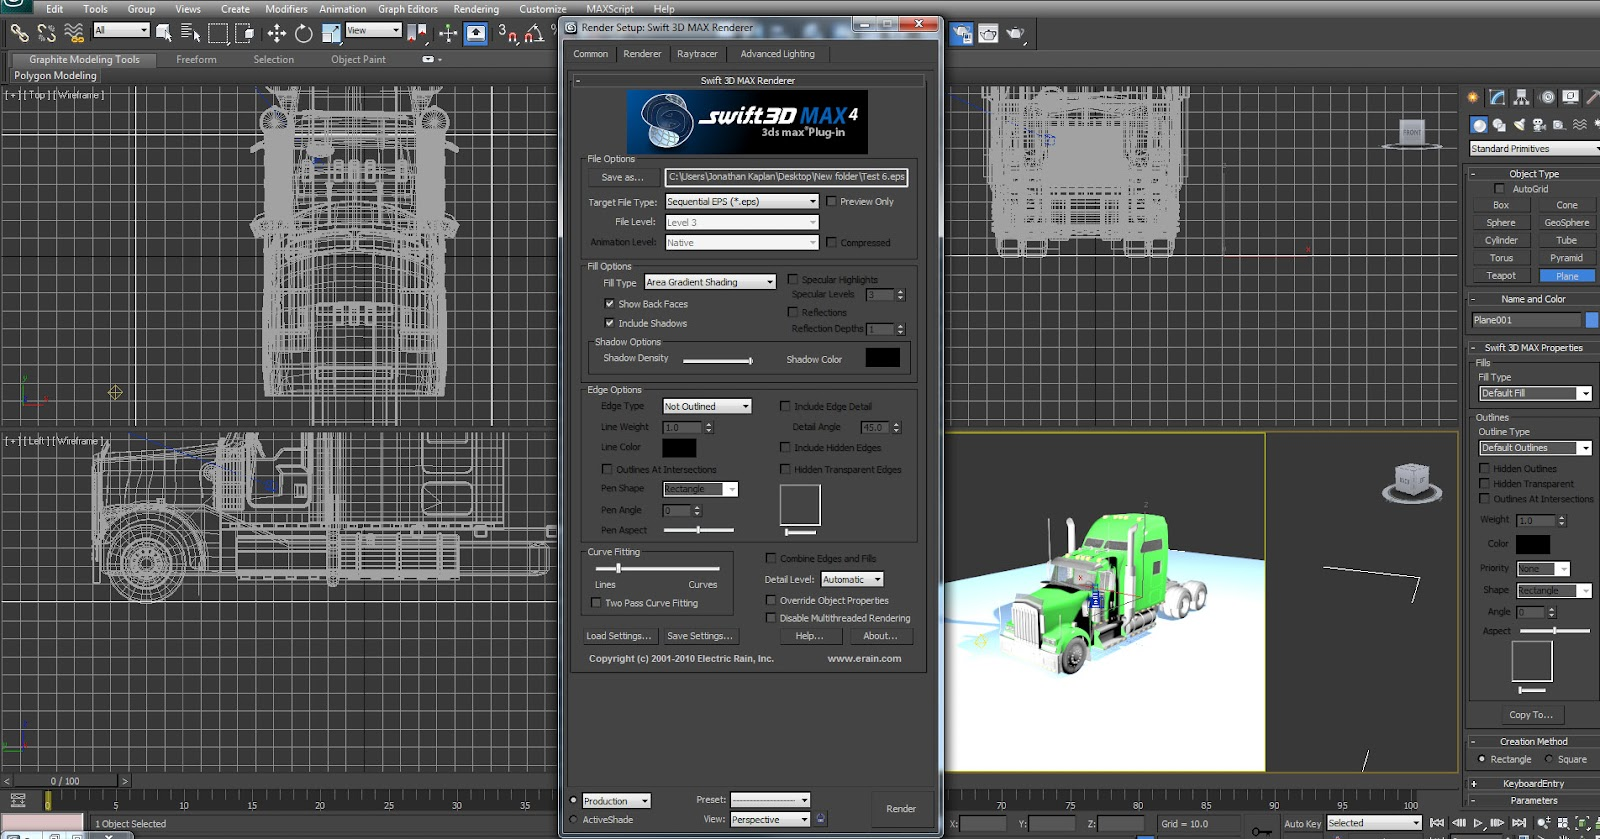 Jonathan Kaplan: 3ds Max Plugin Review: Swift 3D MAX 4